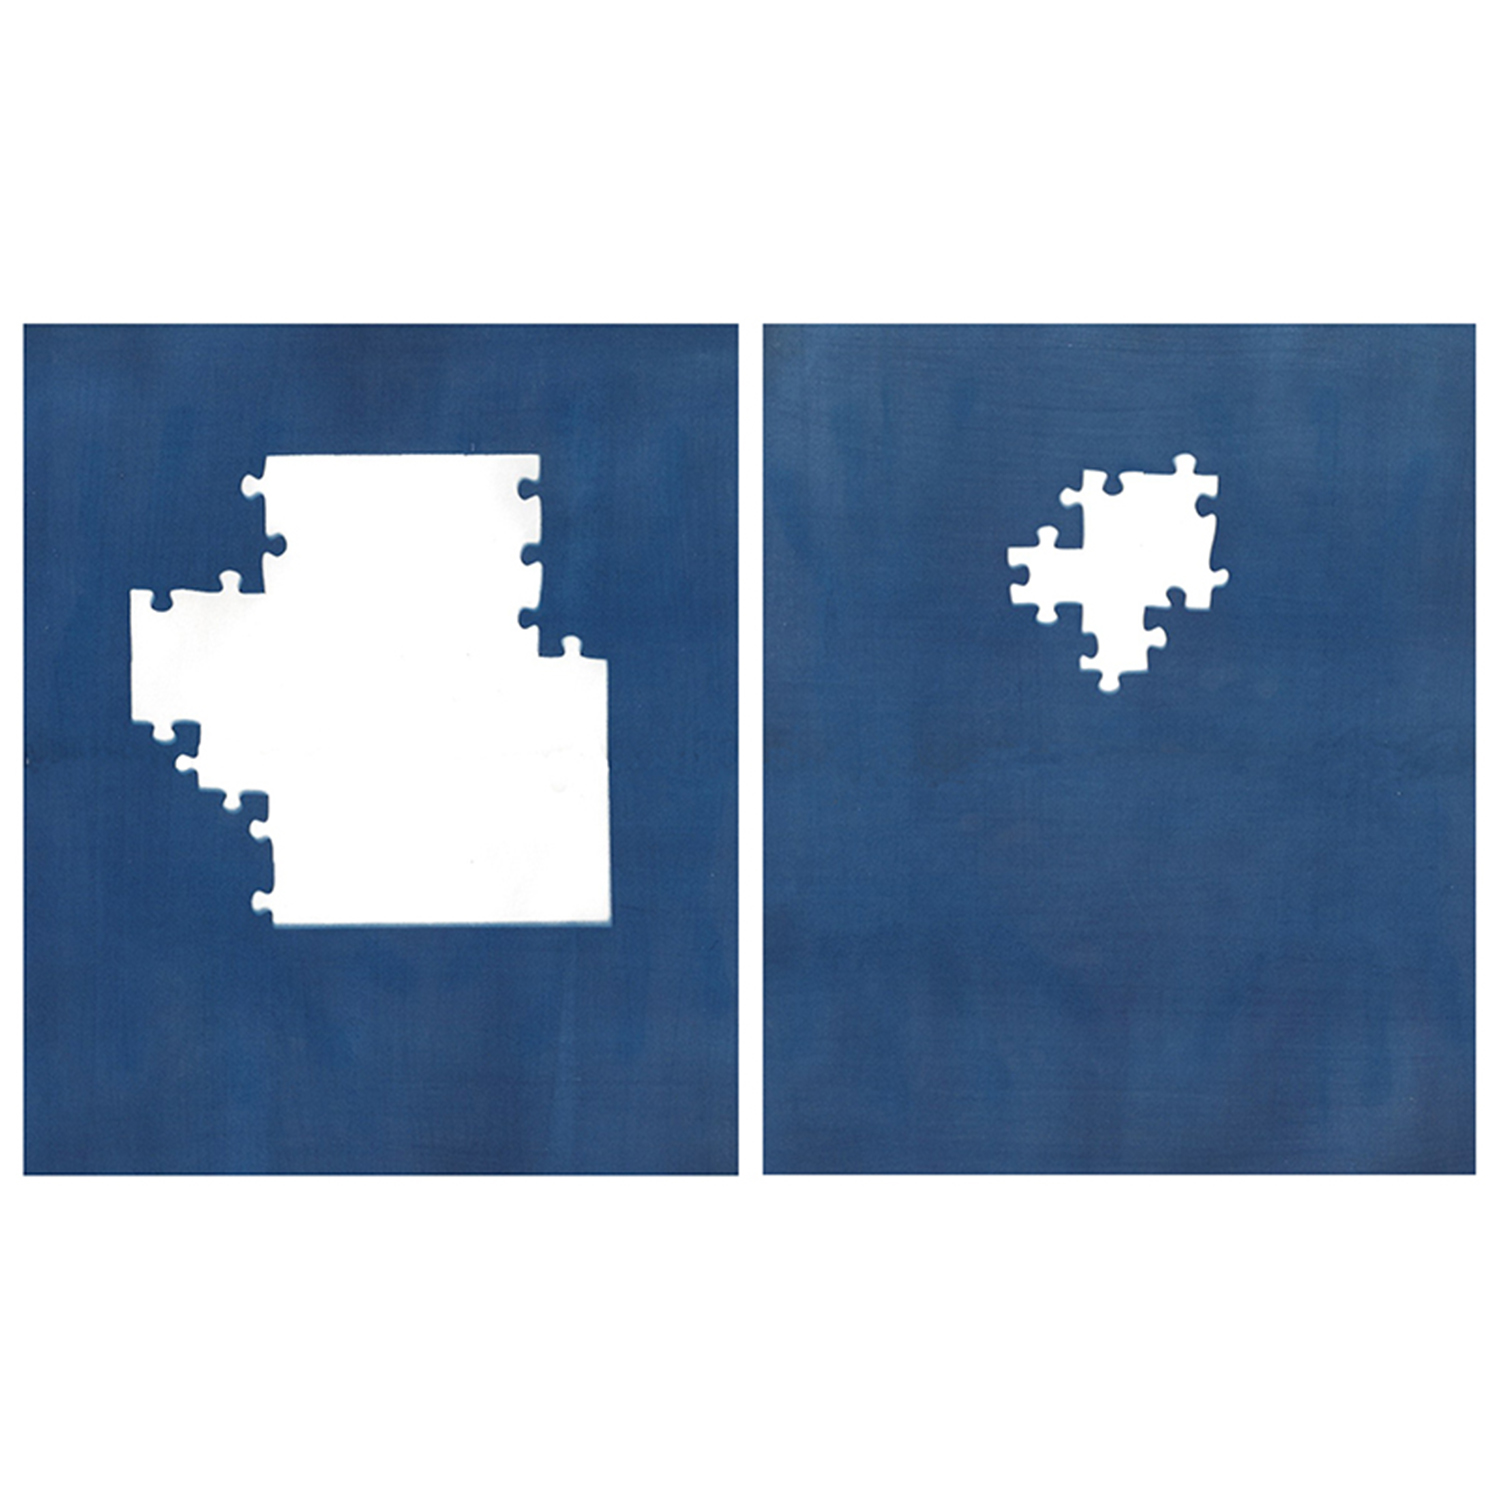 Sarah Irvin, Cyanotype Archive: Princess Puzzle, 2019, Cyanotype, 15 1/2  x 26 1/2 inches